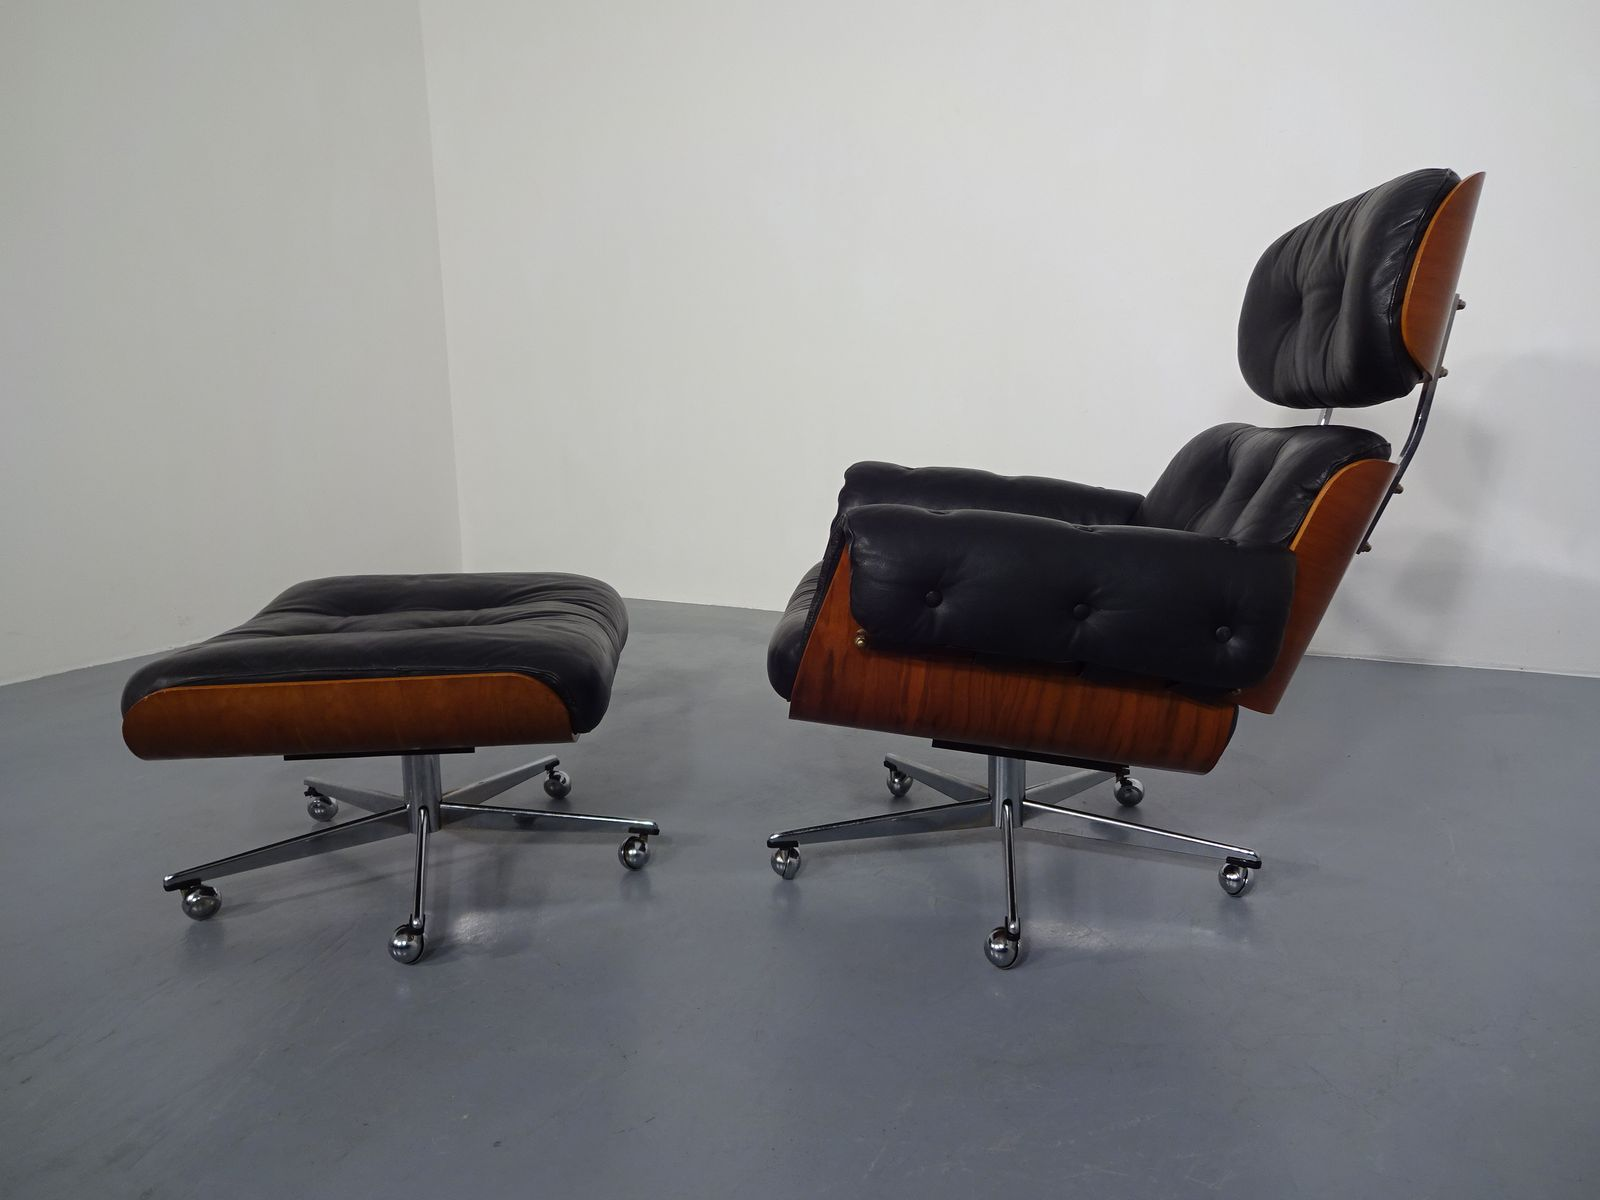 Leather Chair And Ottoman Swiss Wood And Leather Chair Ottoman Set By Martin Stoll For Stoll Giroflex 1960s